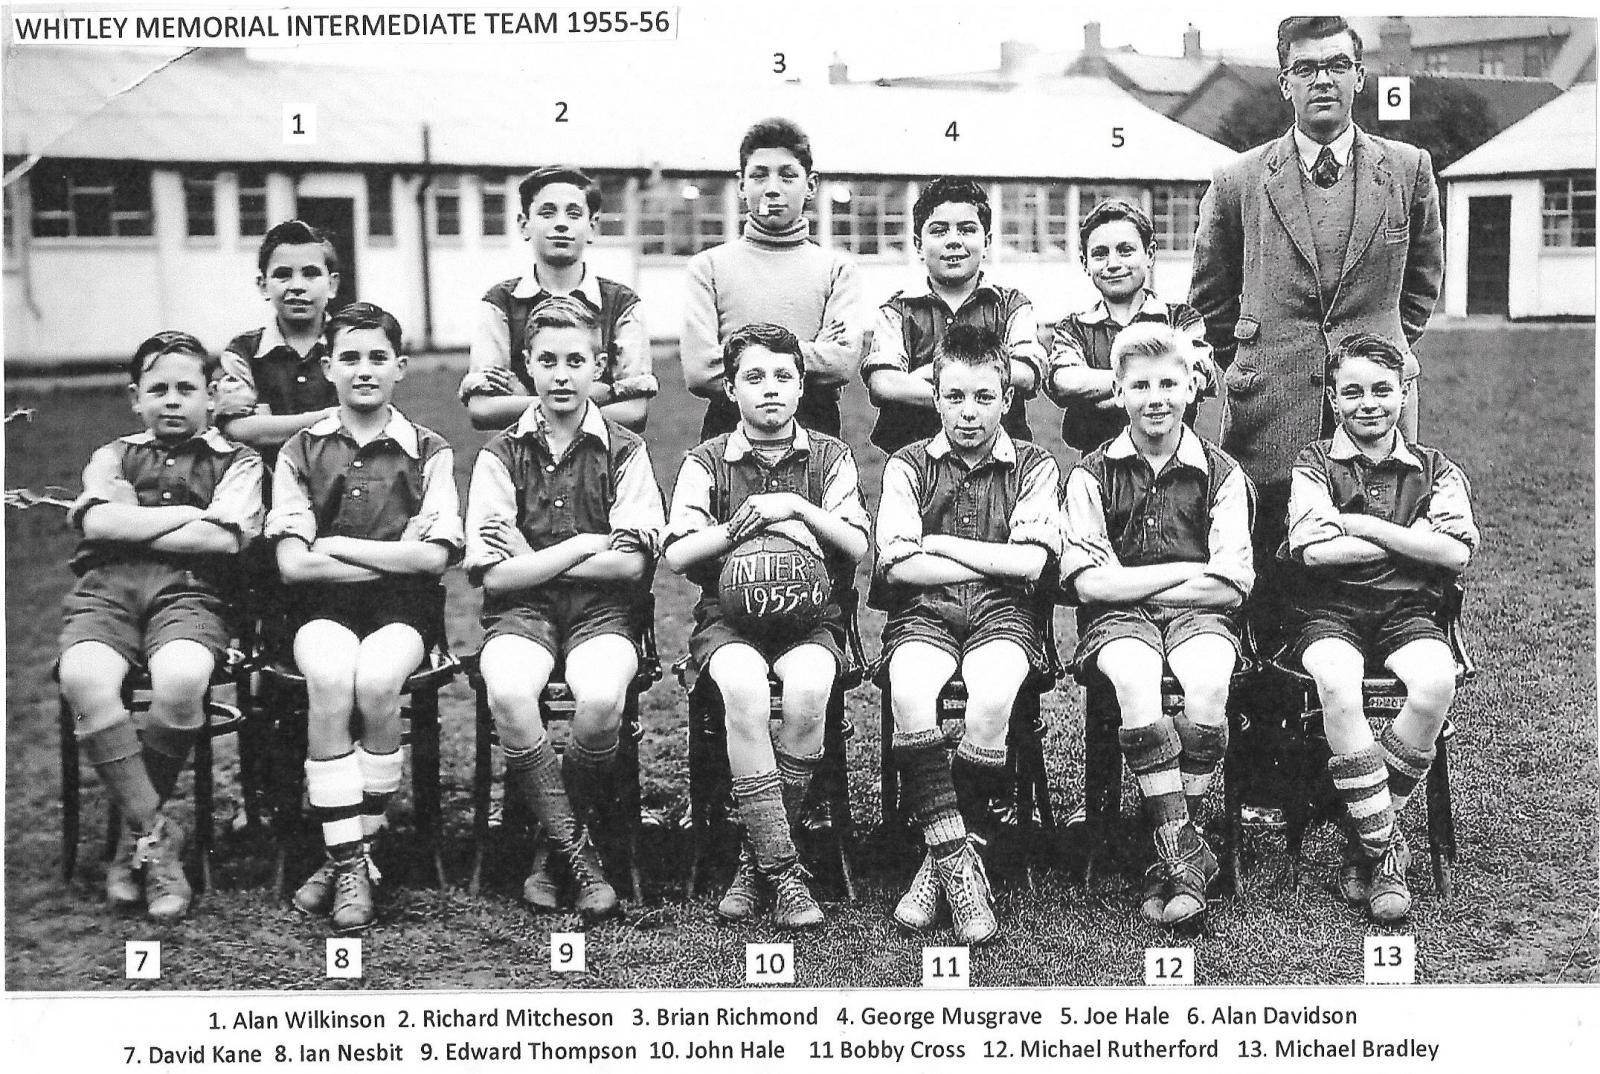 1955-56 Intermediate Team